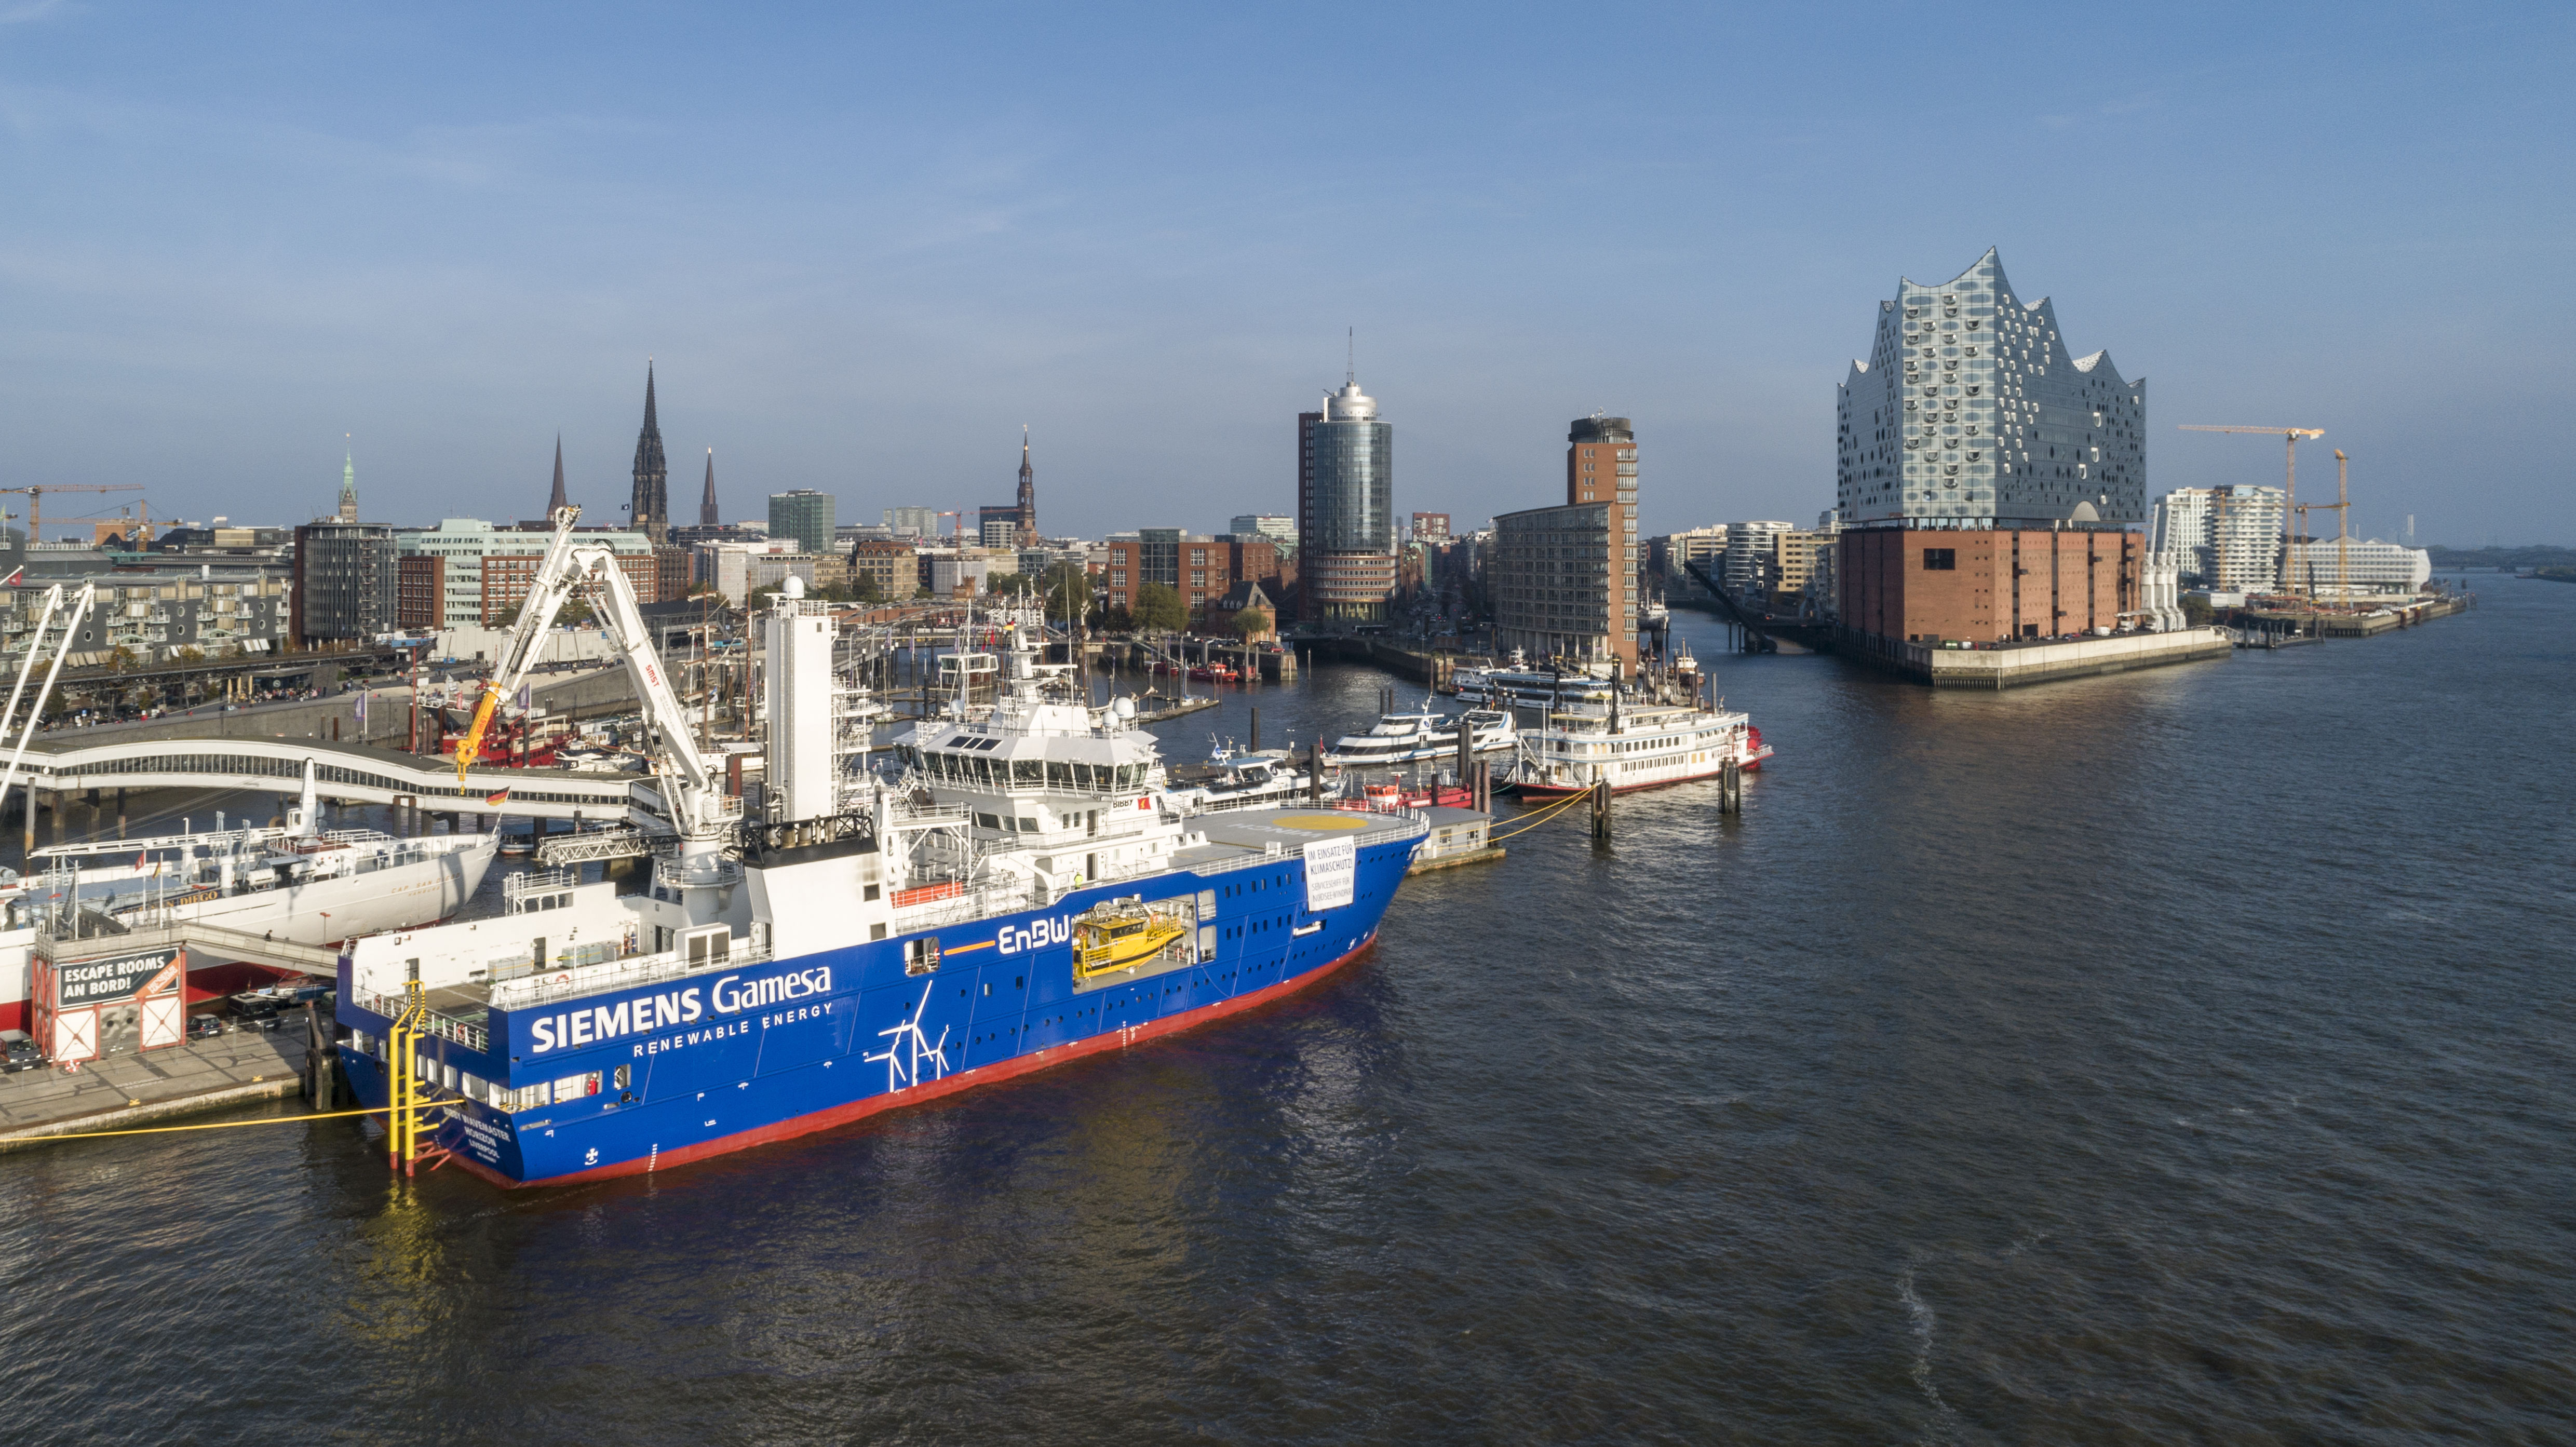 Photo 2: Siemens Gamesa and EnBW are putting the Bibby Wavemaster Horizon into operation in the Port of Hamburg. (Photo: EnBW)